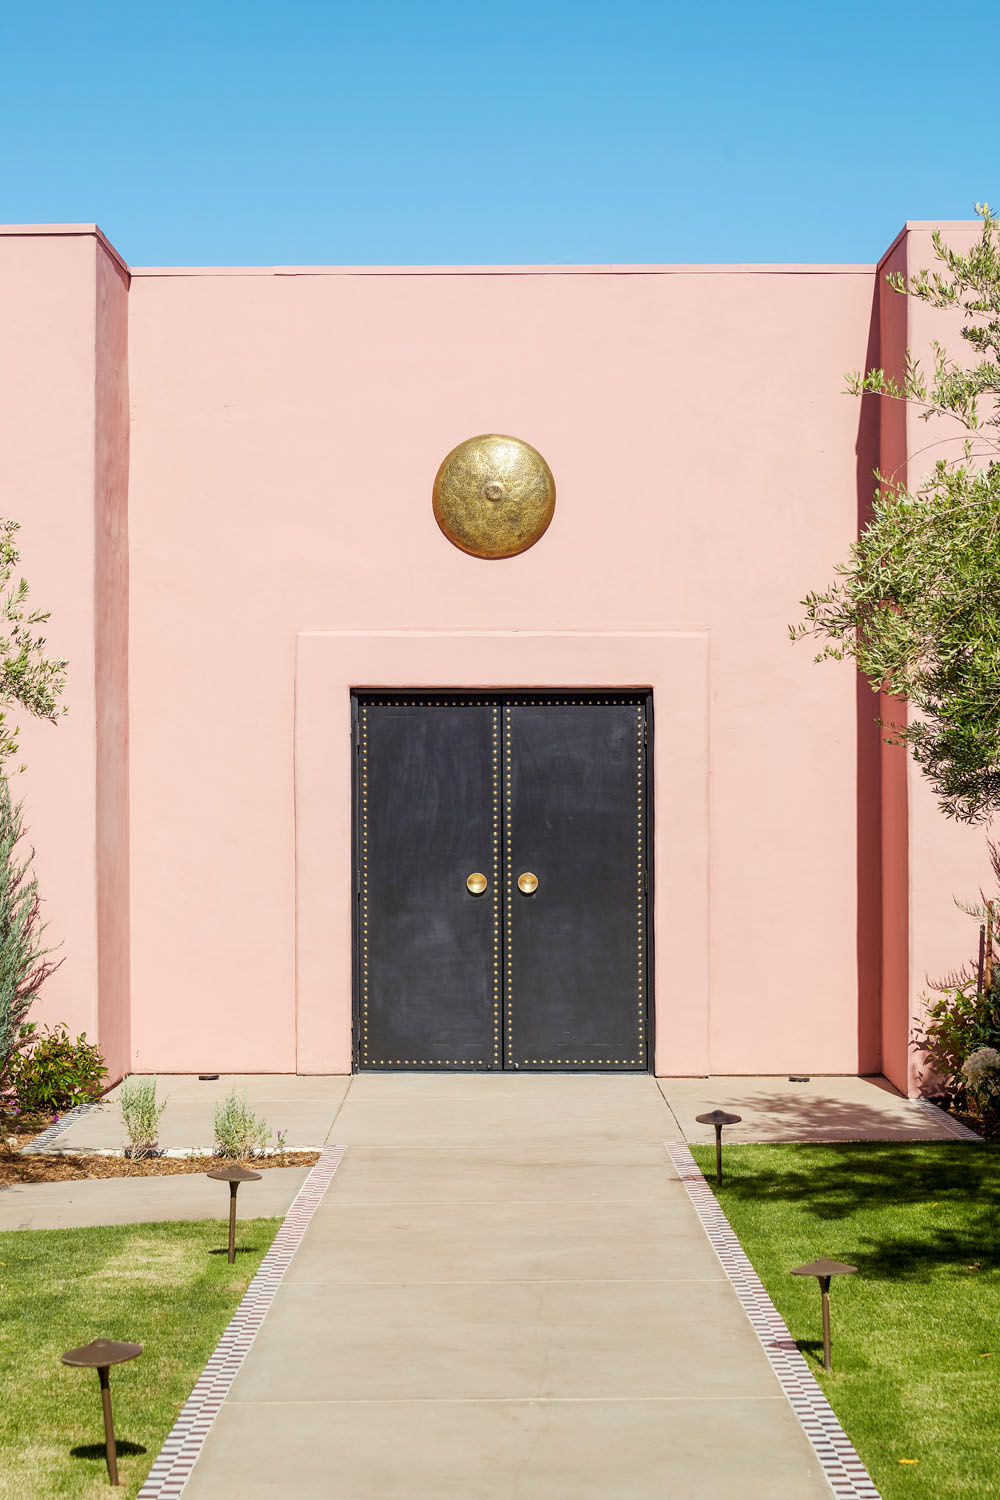 Sands Hotel & Spa: The Most Photogenic Hotel in the Desert | Rue